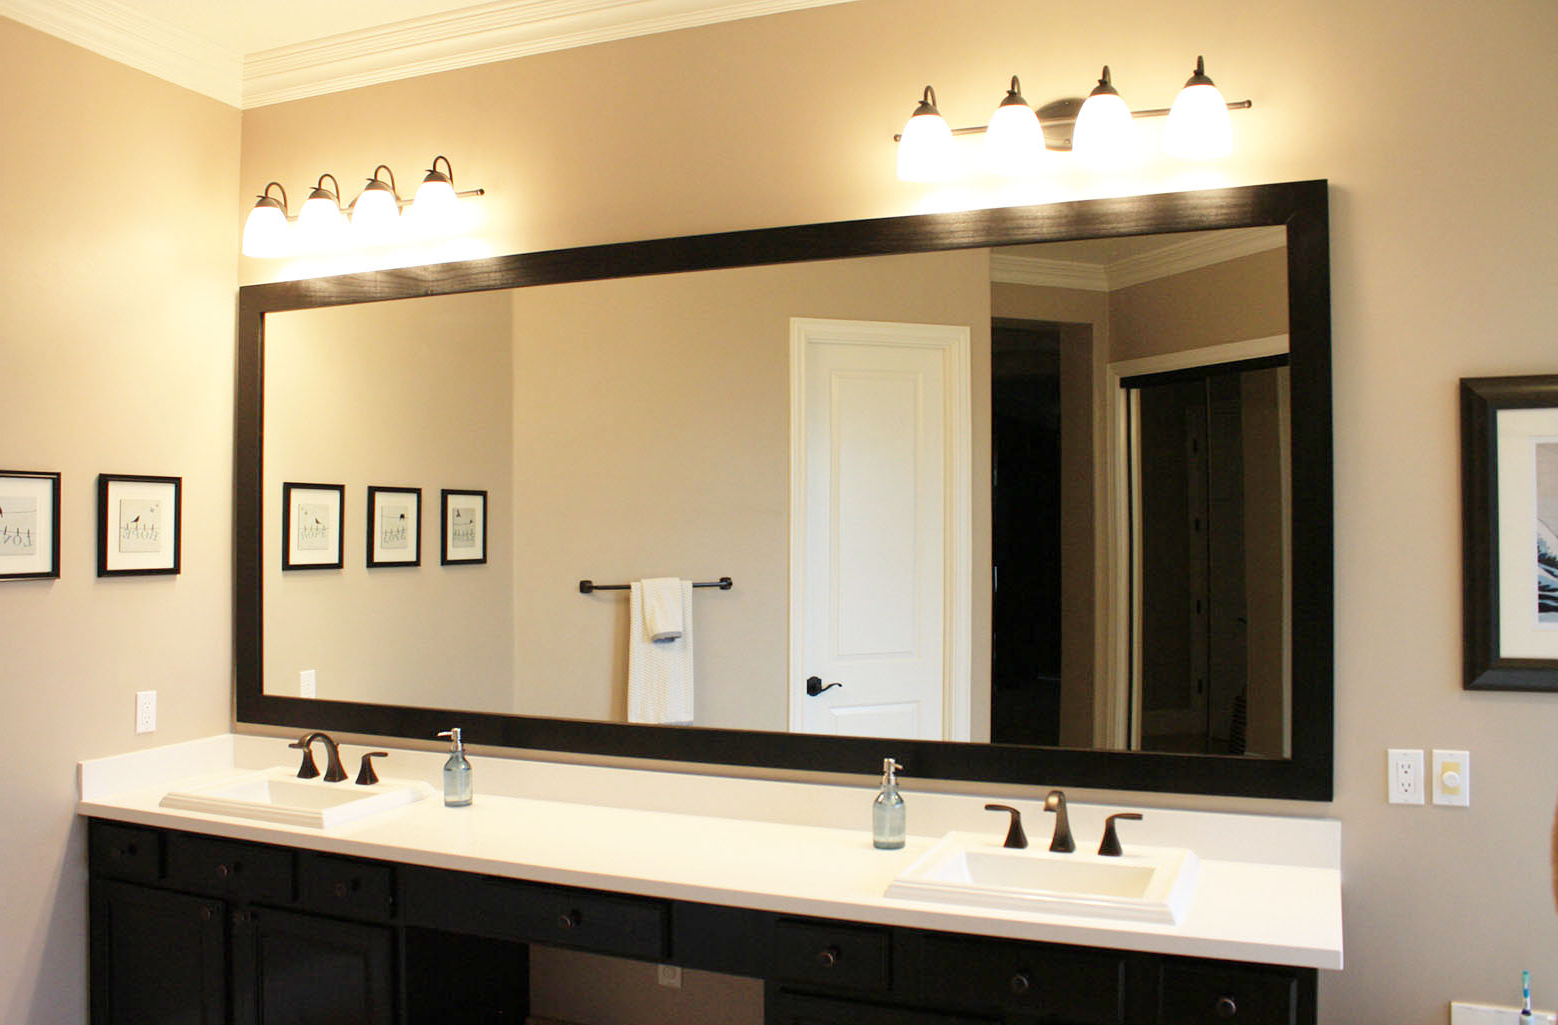 2019 Hanging Wall Mirrors For Bathroom For Custom Hanging Mirrors That Make Your Bathroom Pop! – The (Gallery 4 of 20)